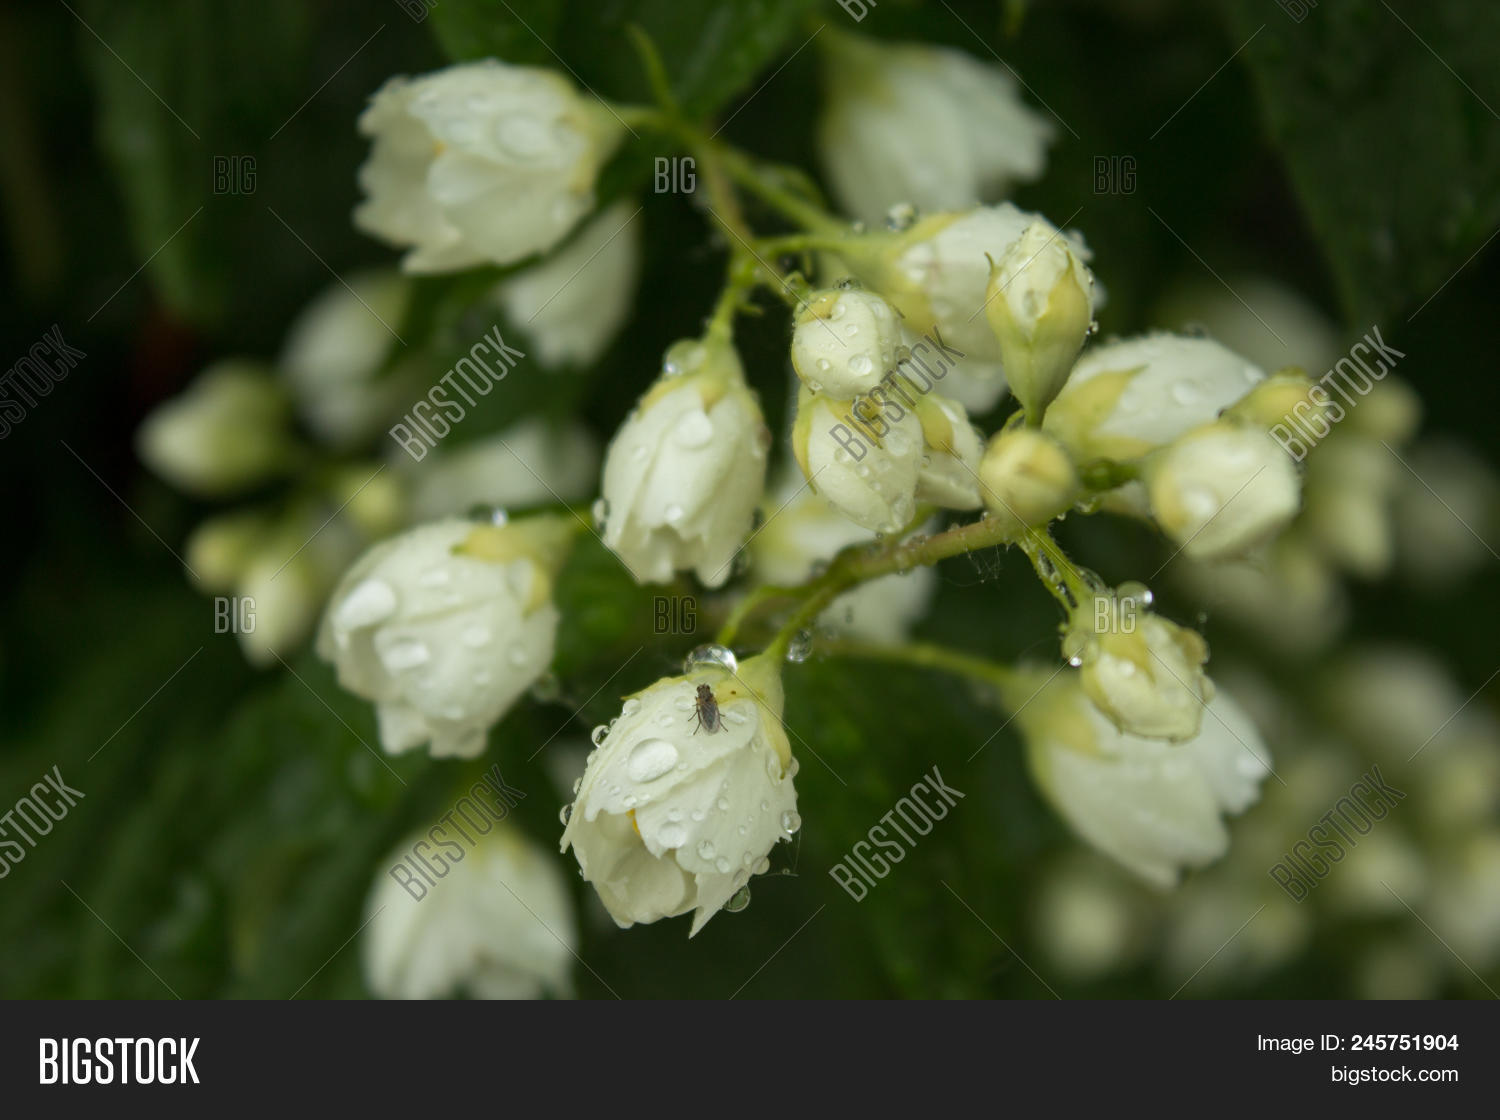 Jasmine flowers image photo free trial bigstock jasmine flowers jasmine is unfold raindrops on buds flowers are semi closed izmirmasajfo